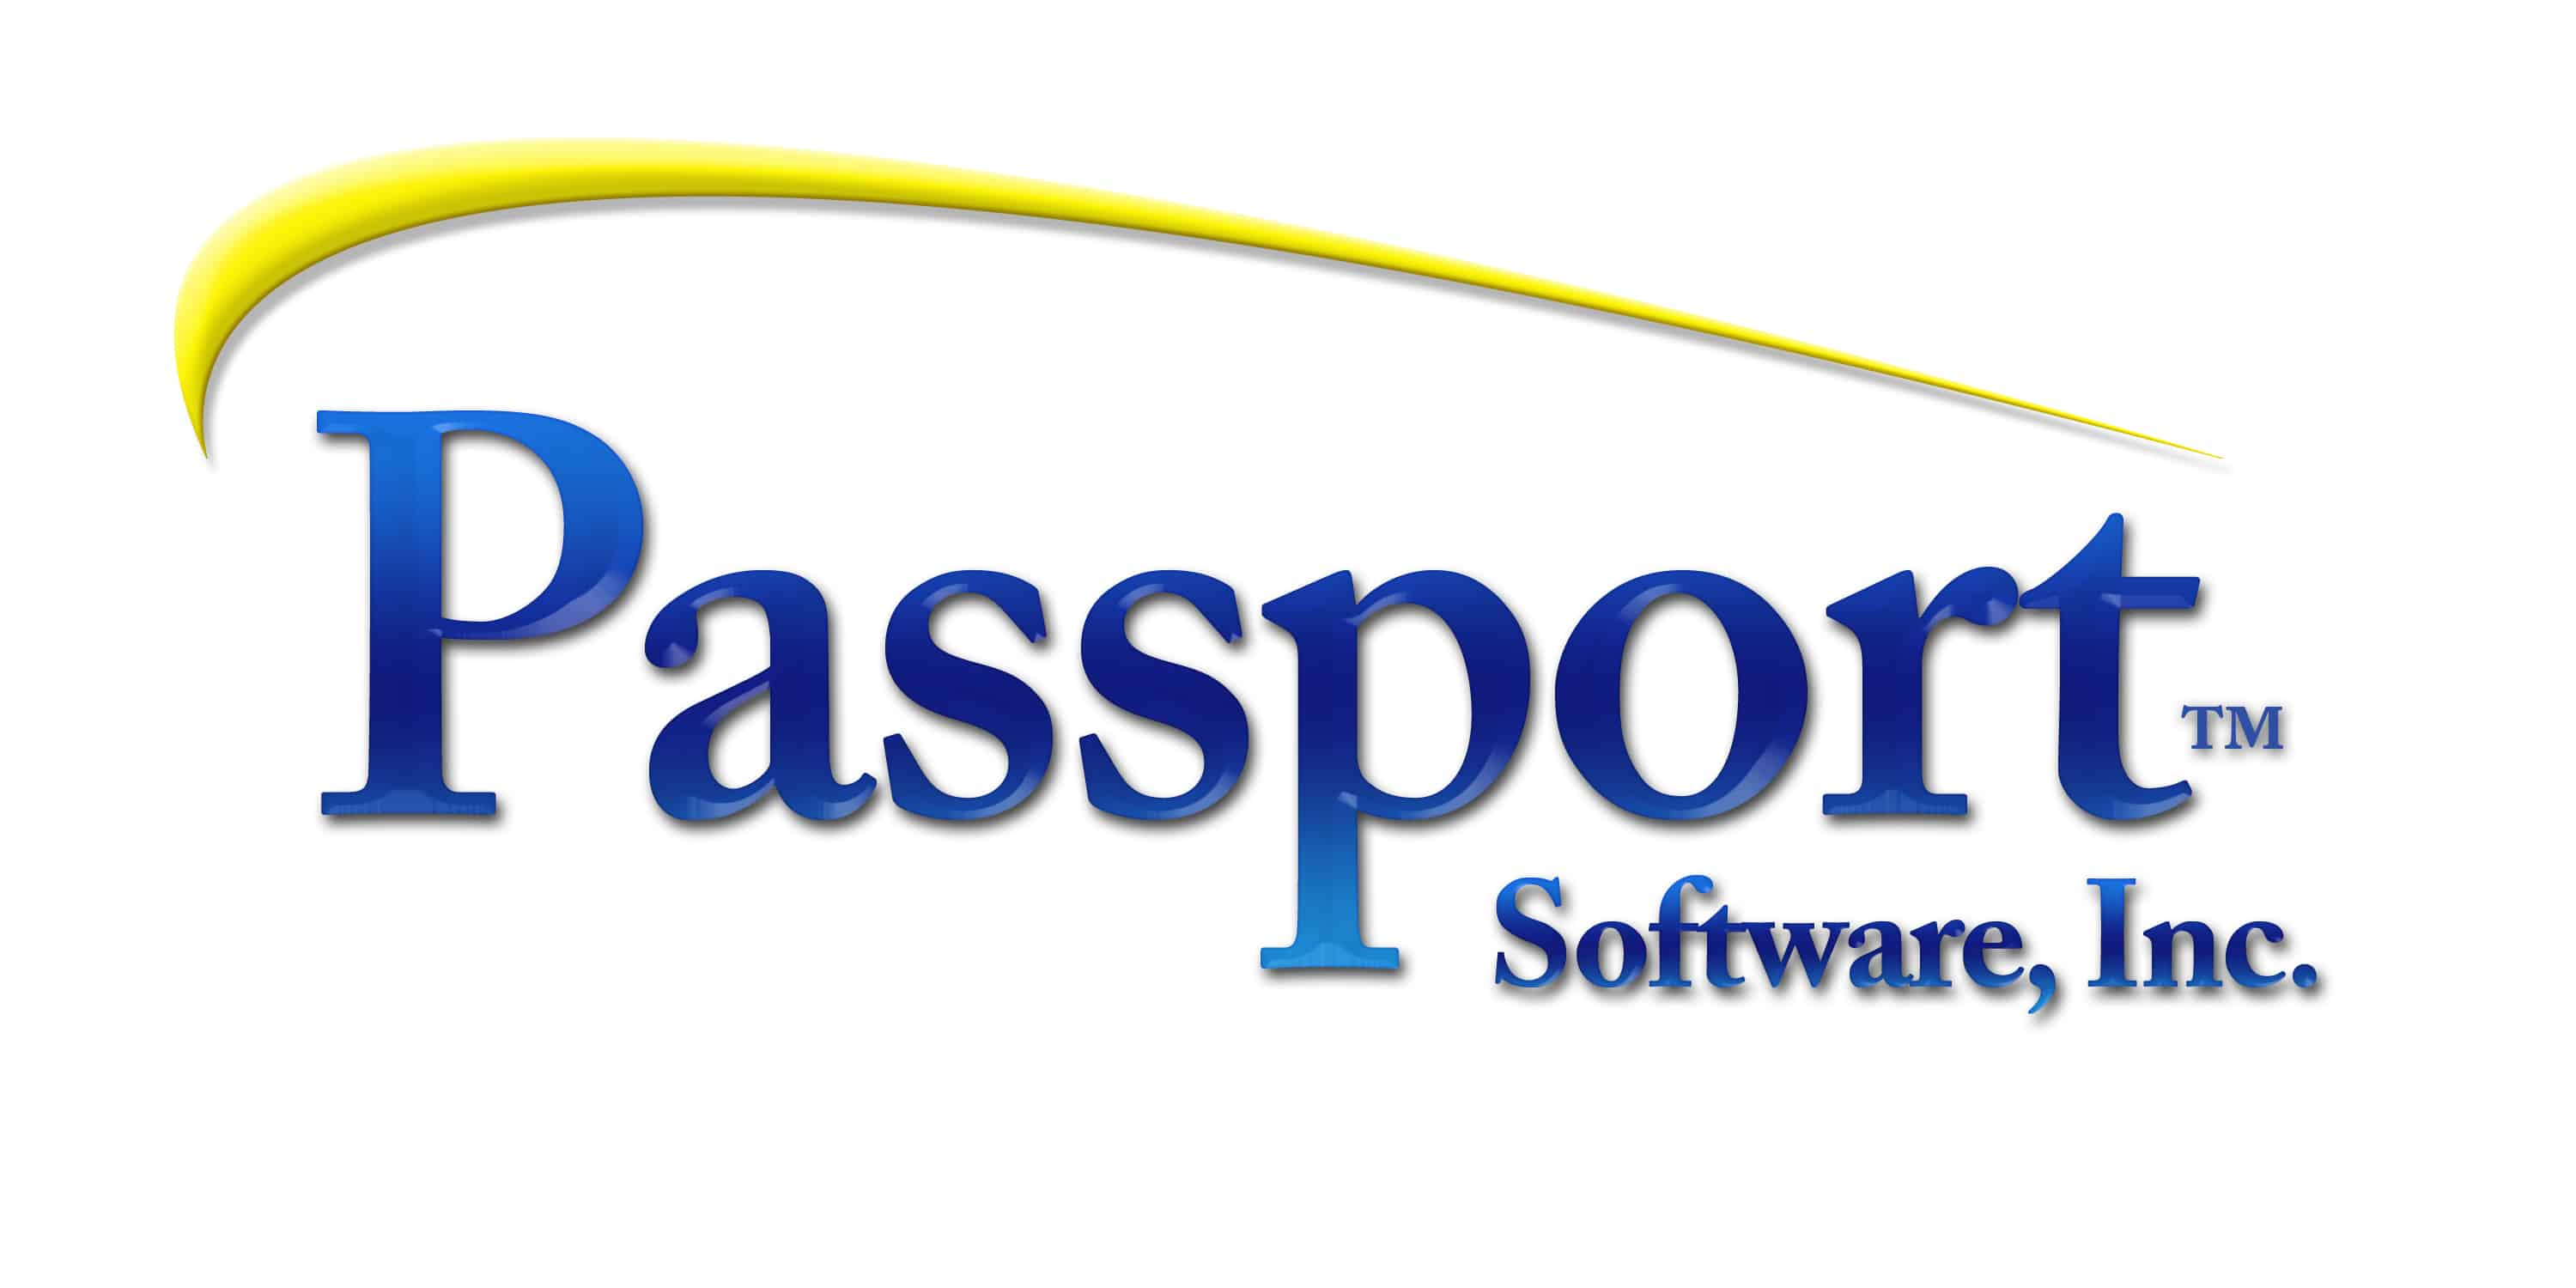 Picture of Passport Software logo